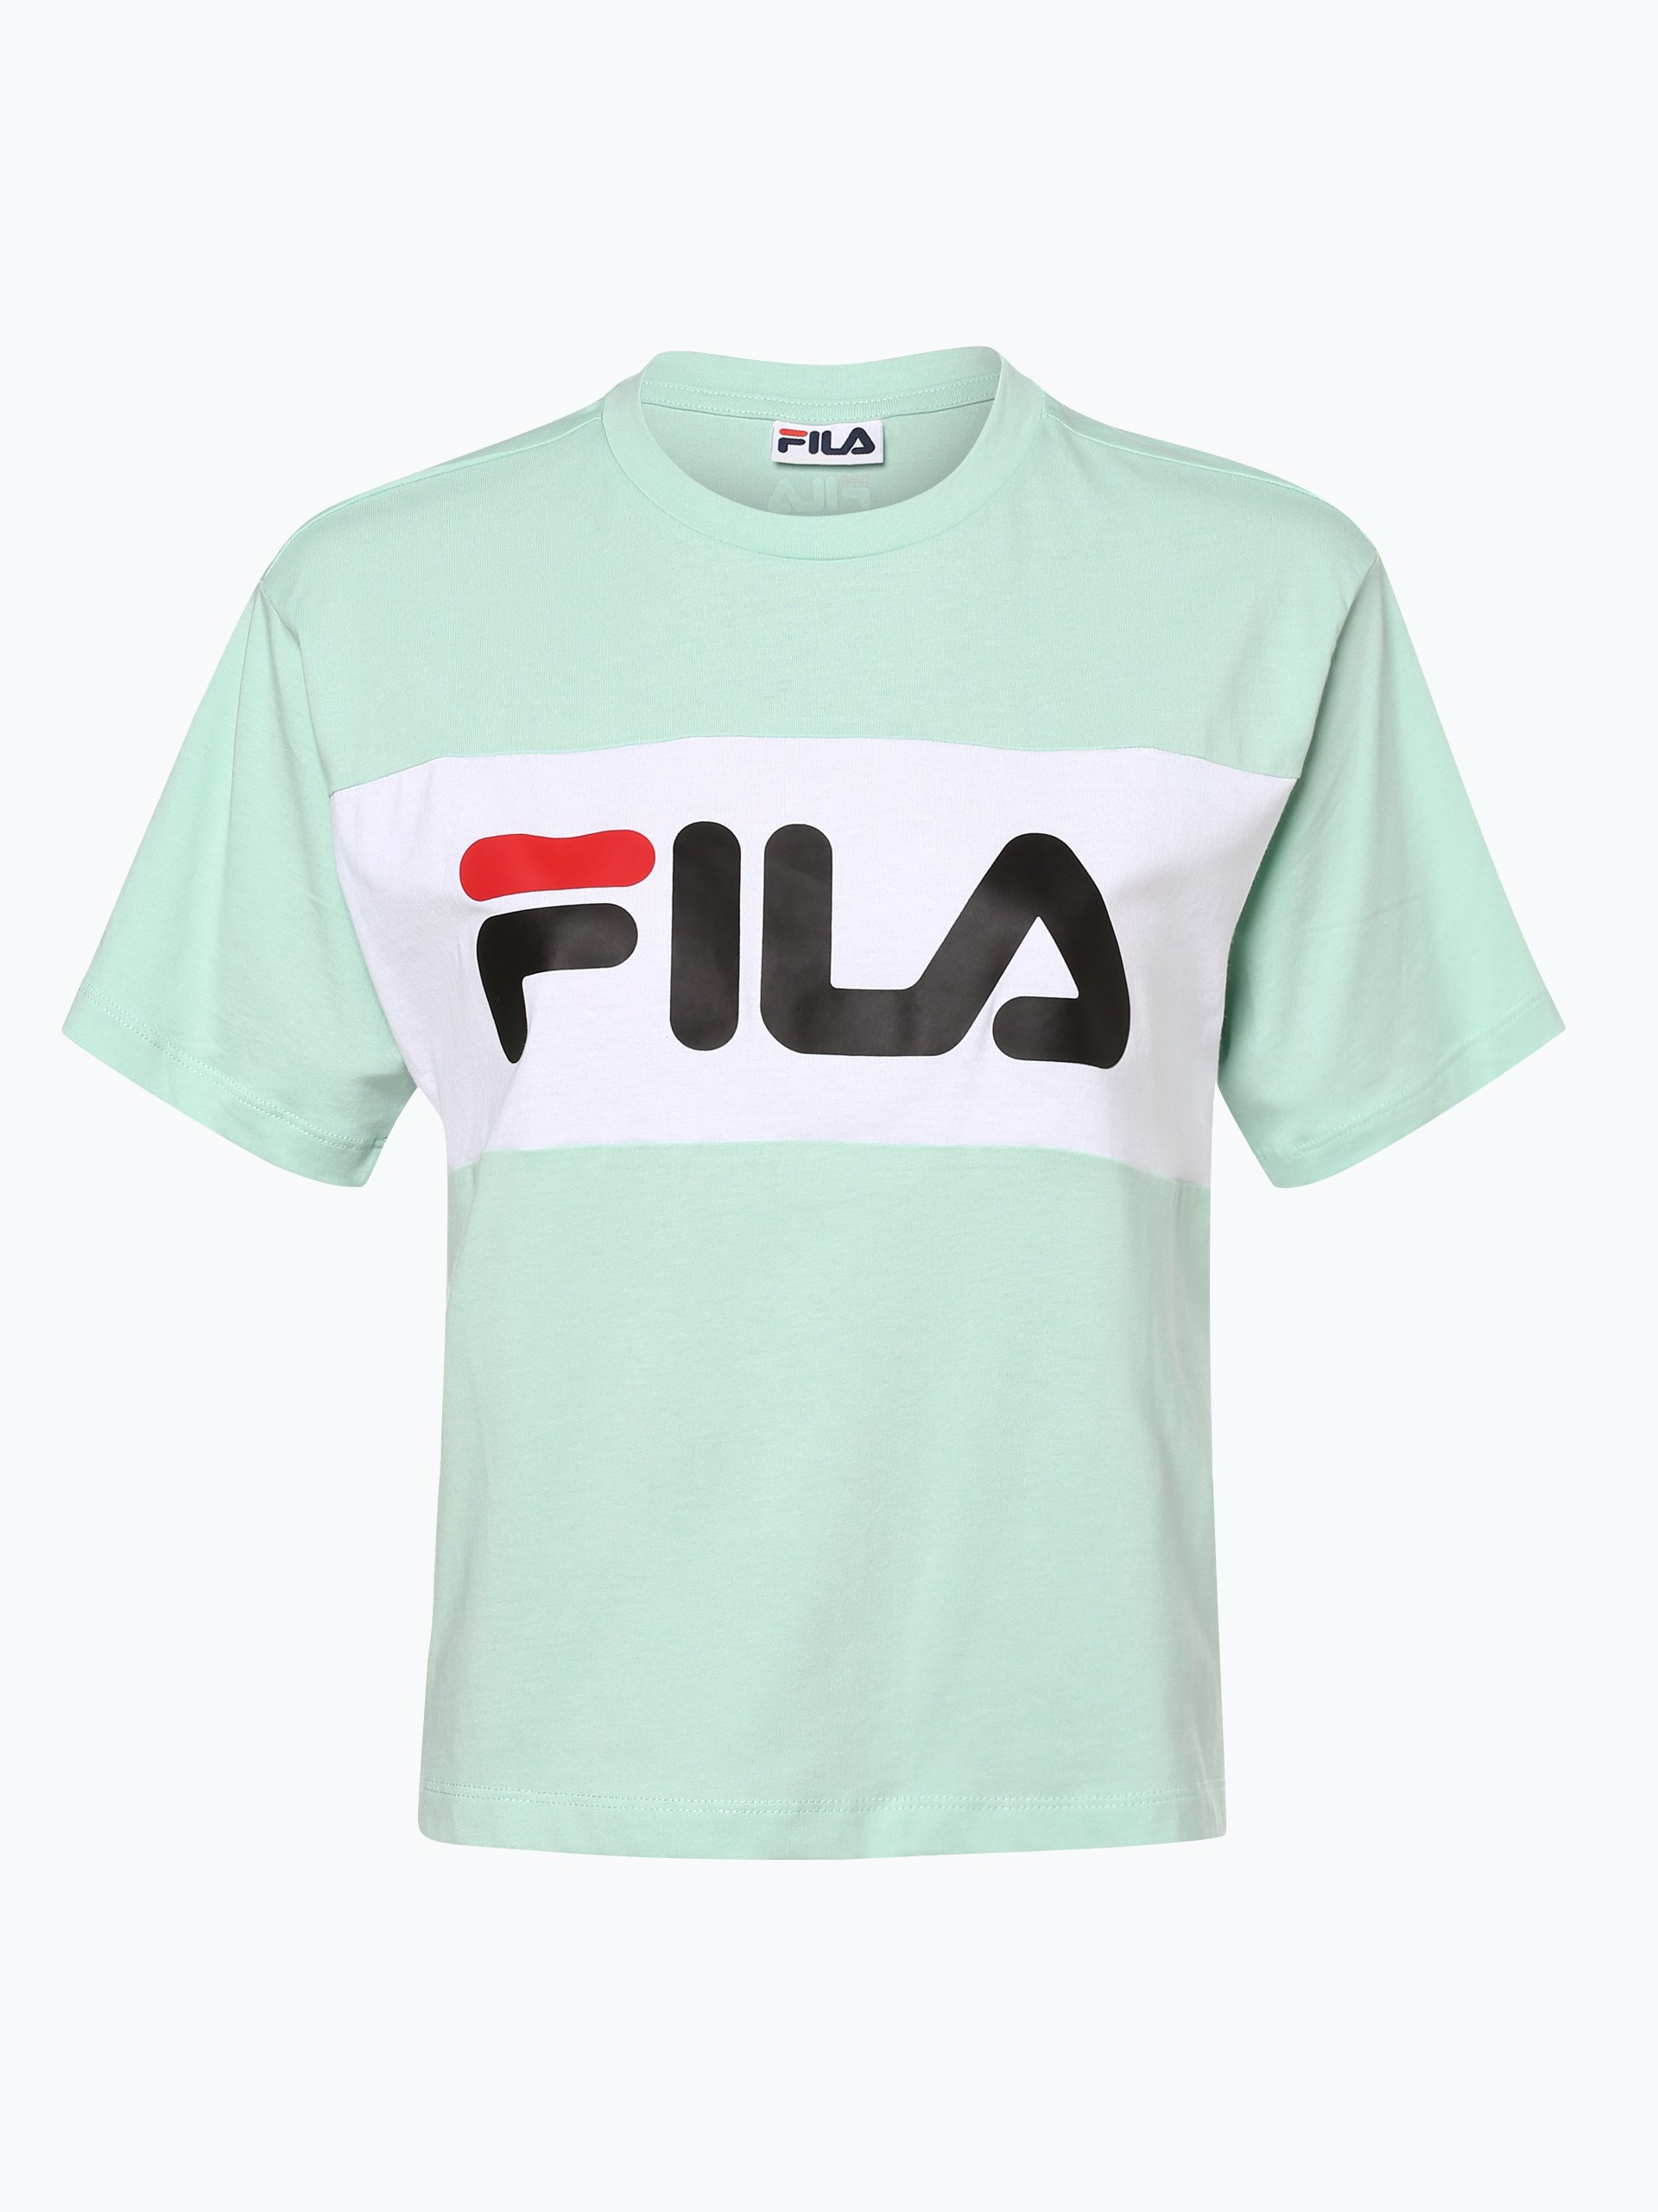 FILA Damen T-Shirt - Allison